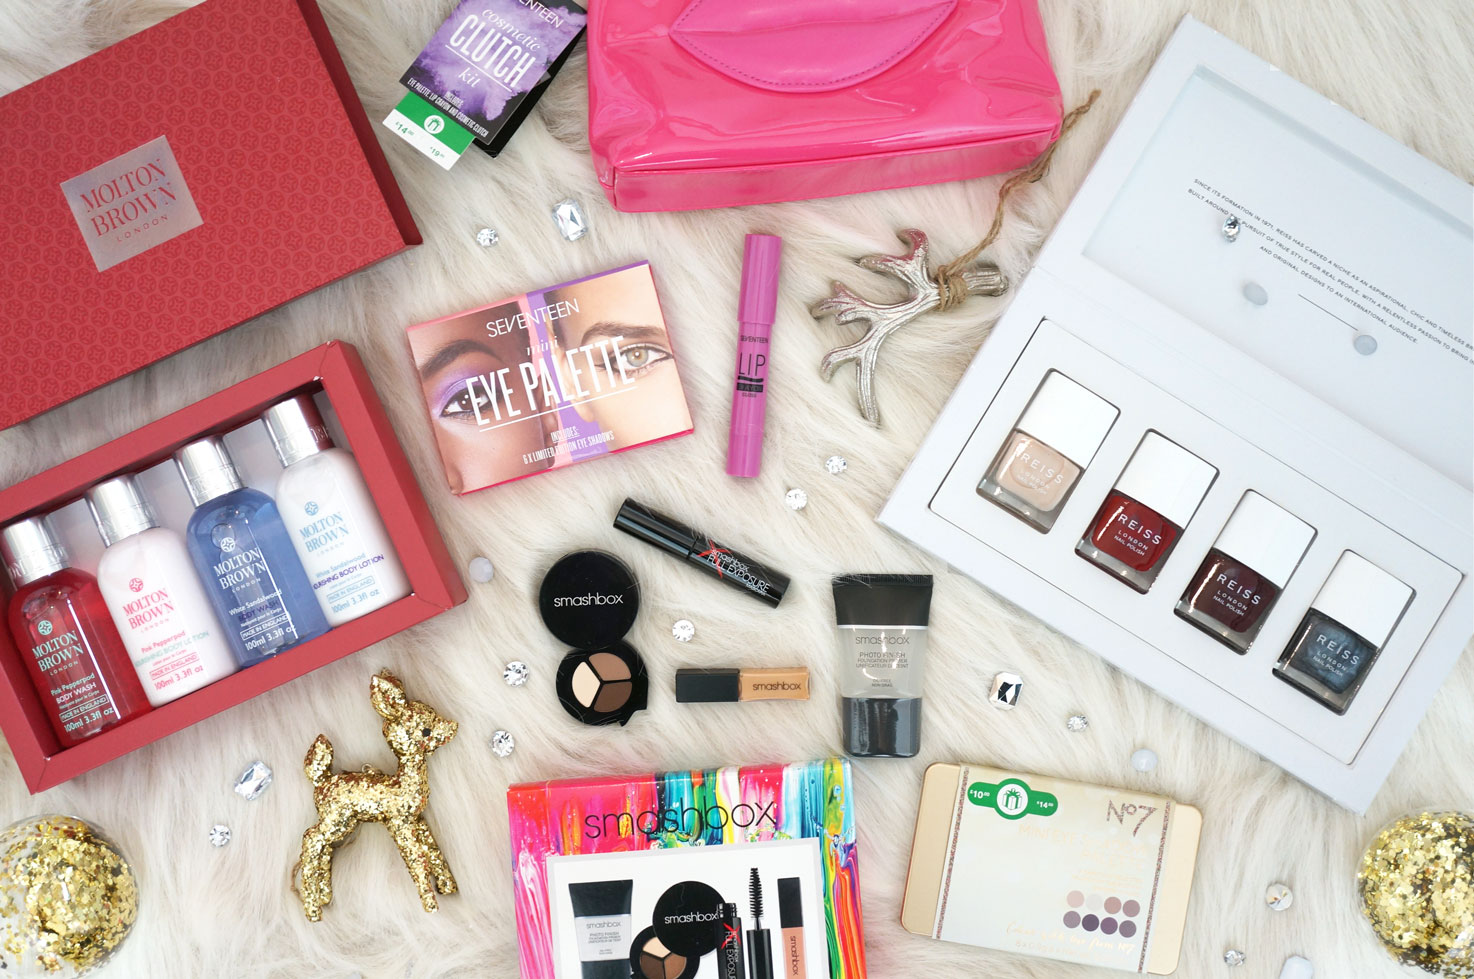 Christmas Beauty Gift Ideas from Boots - Thou Shalt Not Covet...